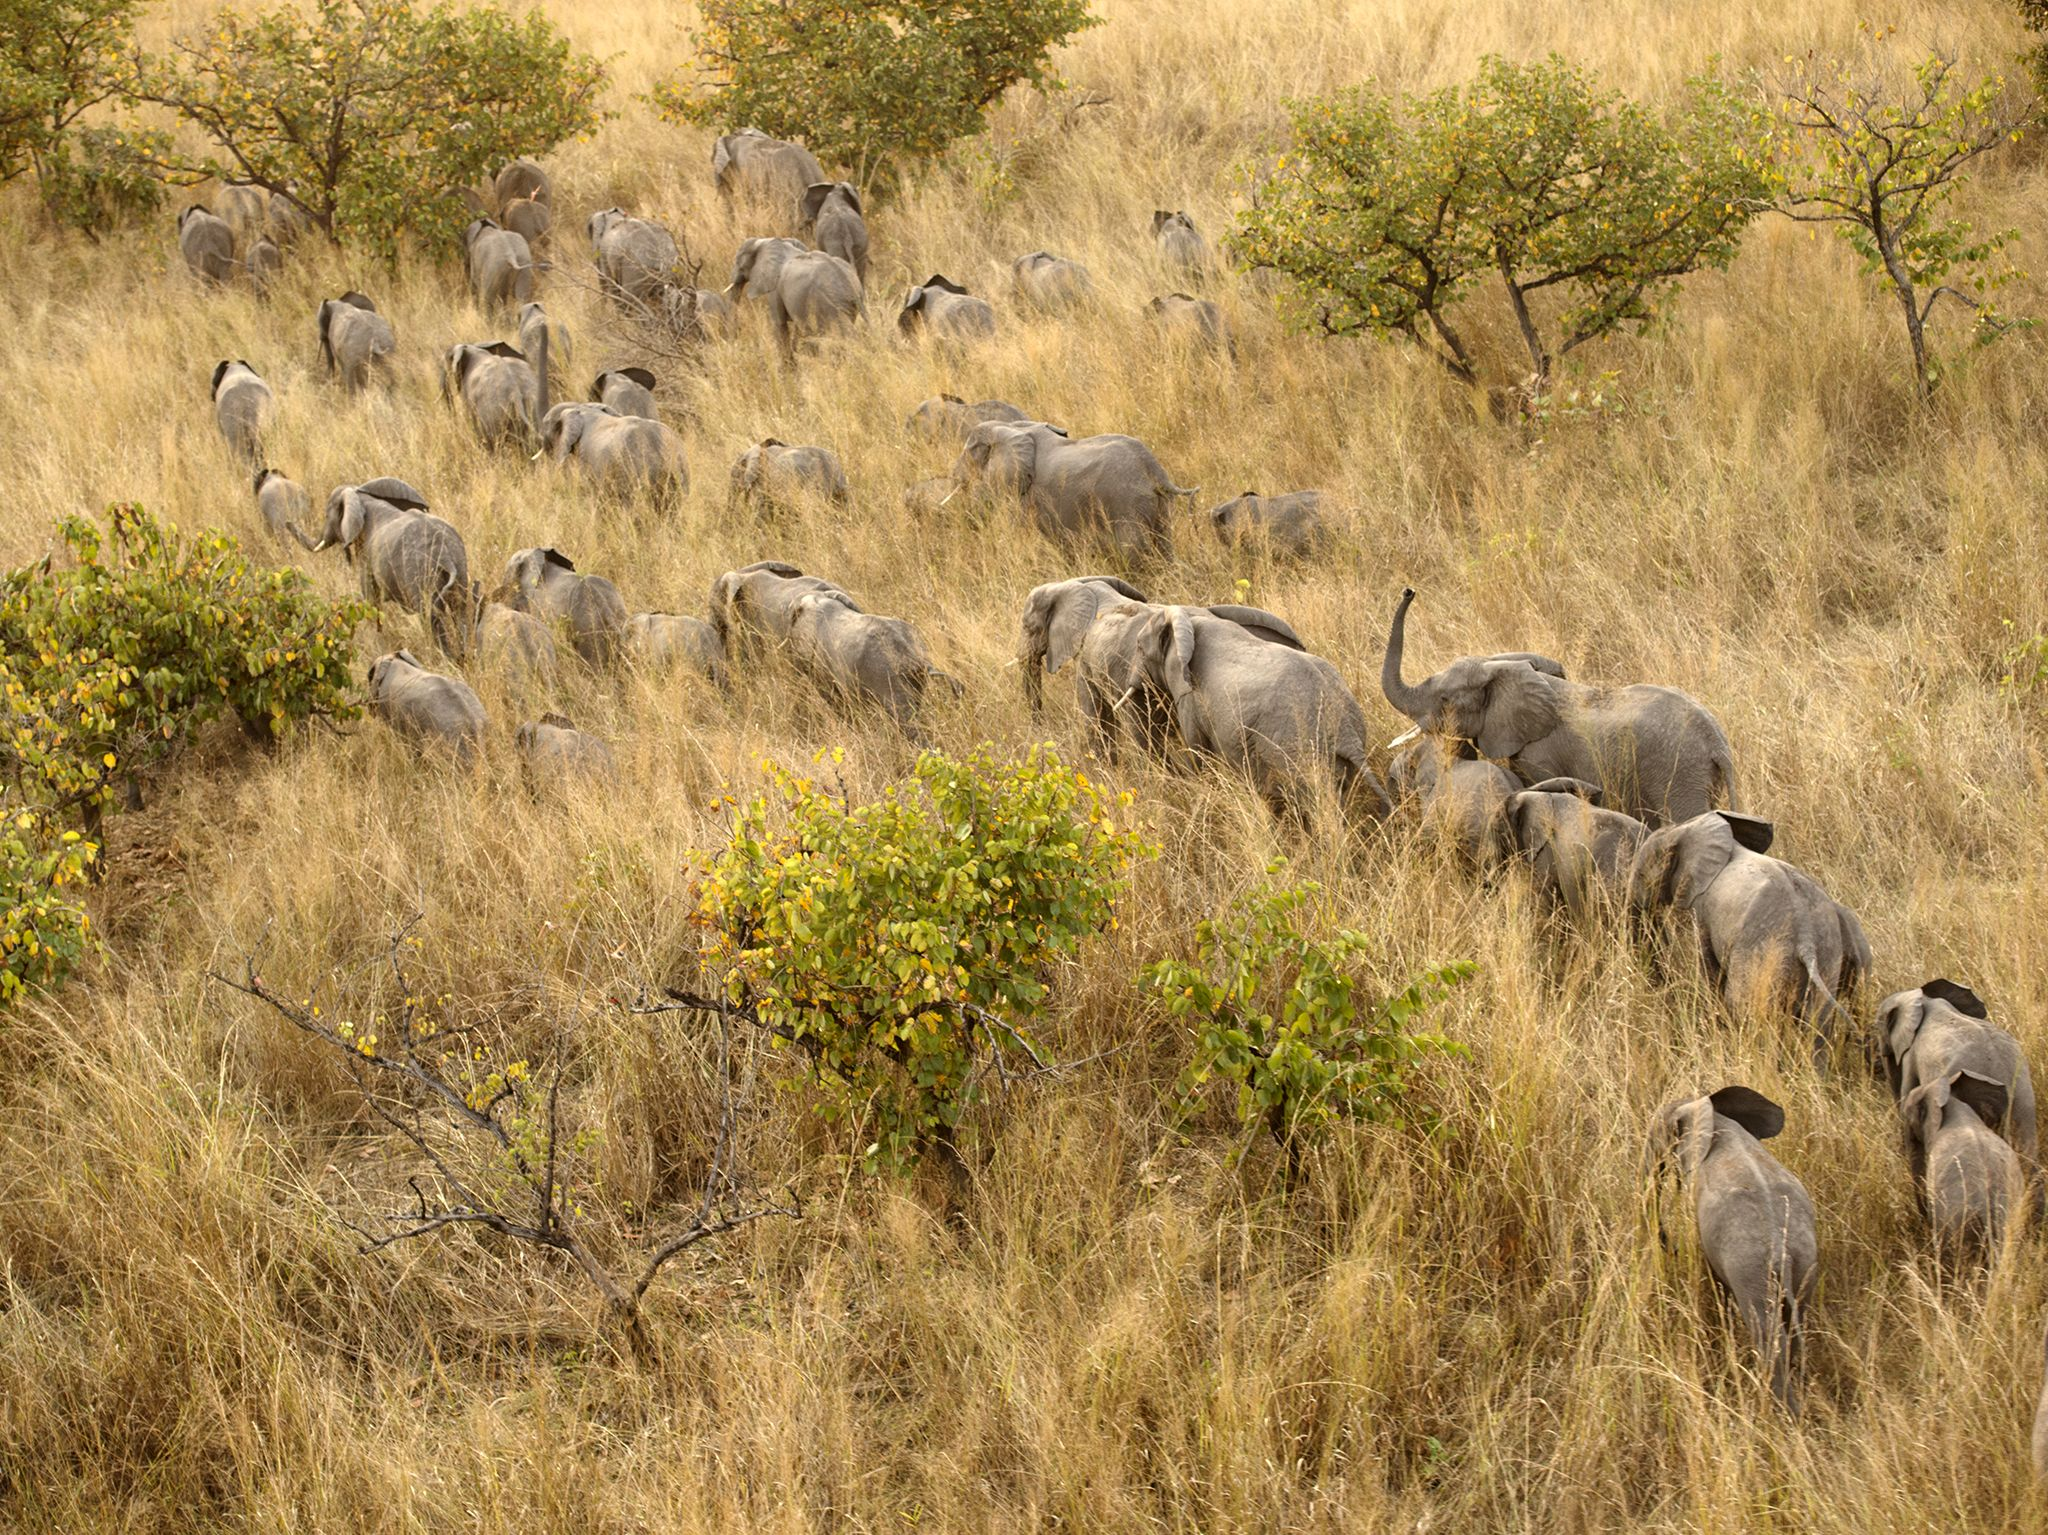 In 1977 there were 22,000 elephants in Garamba National Park. Today there are less than 1,200... [Foto del giorno - aprile 2019]